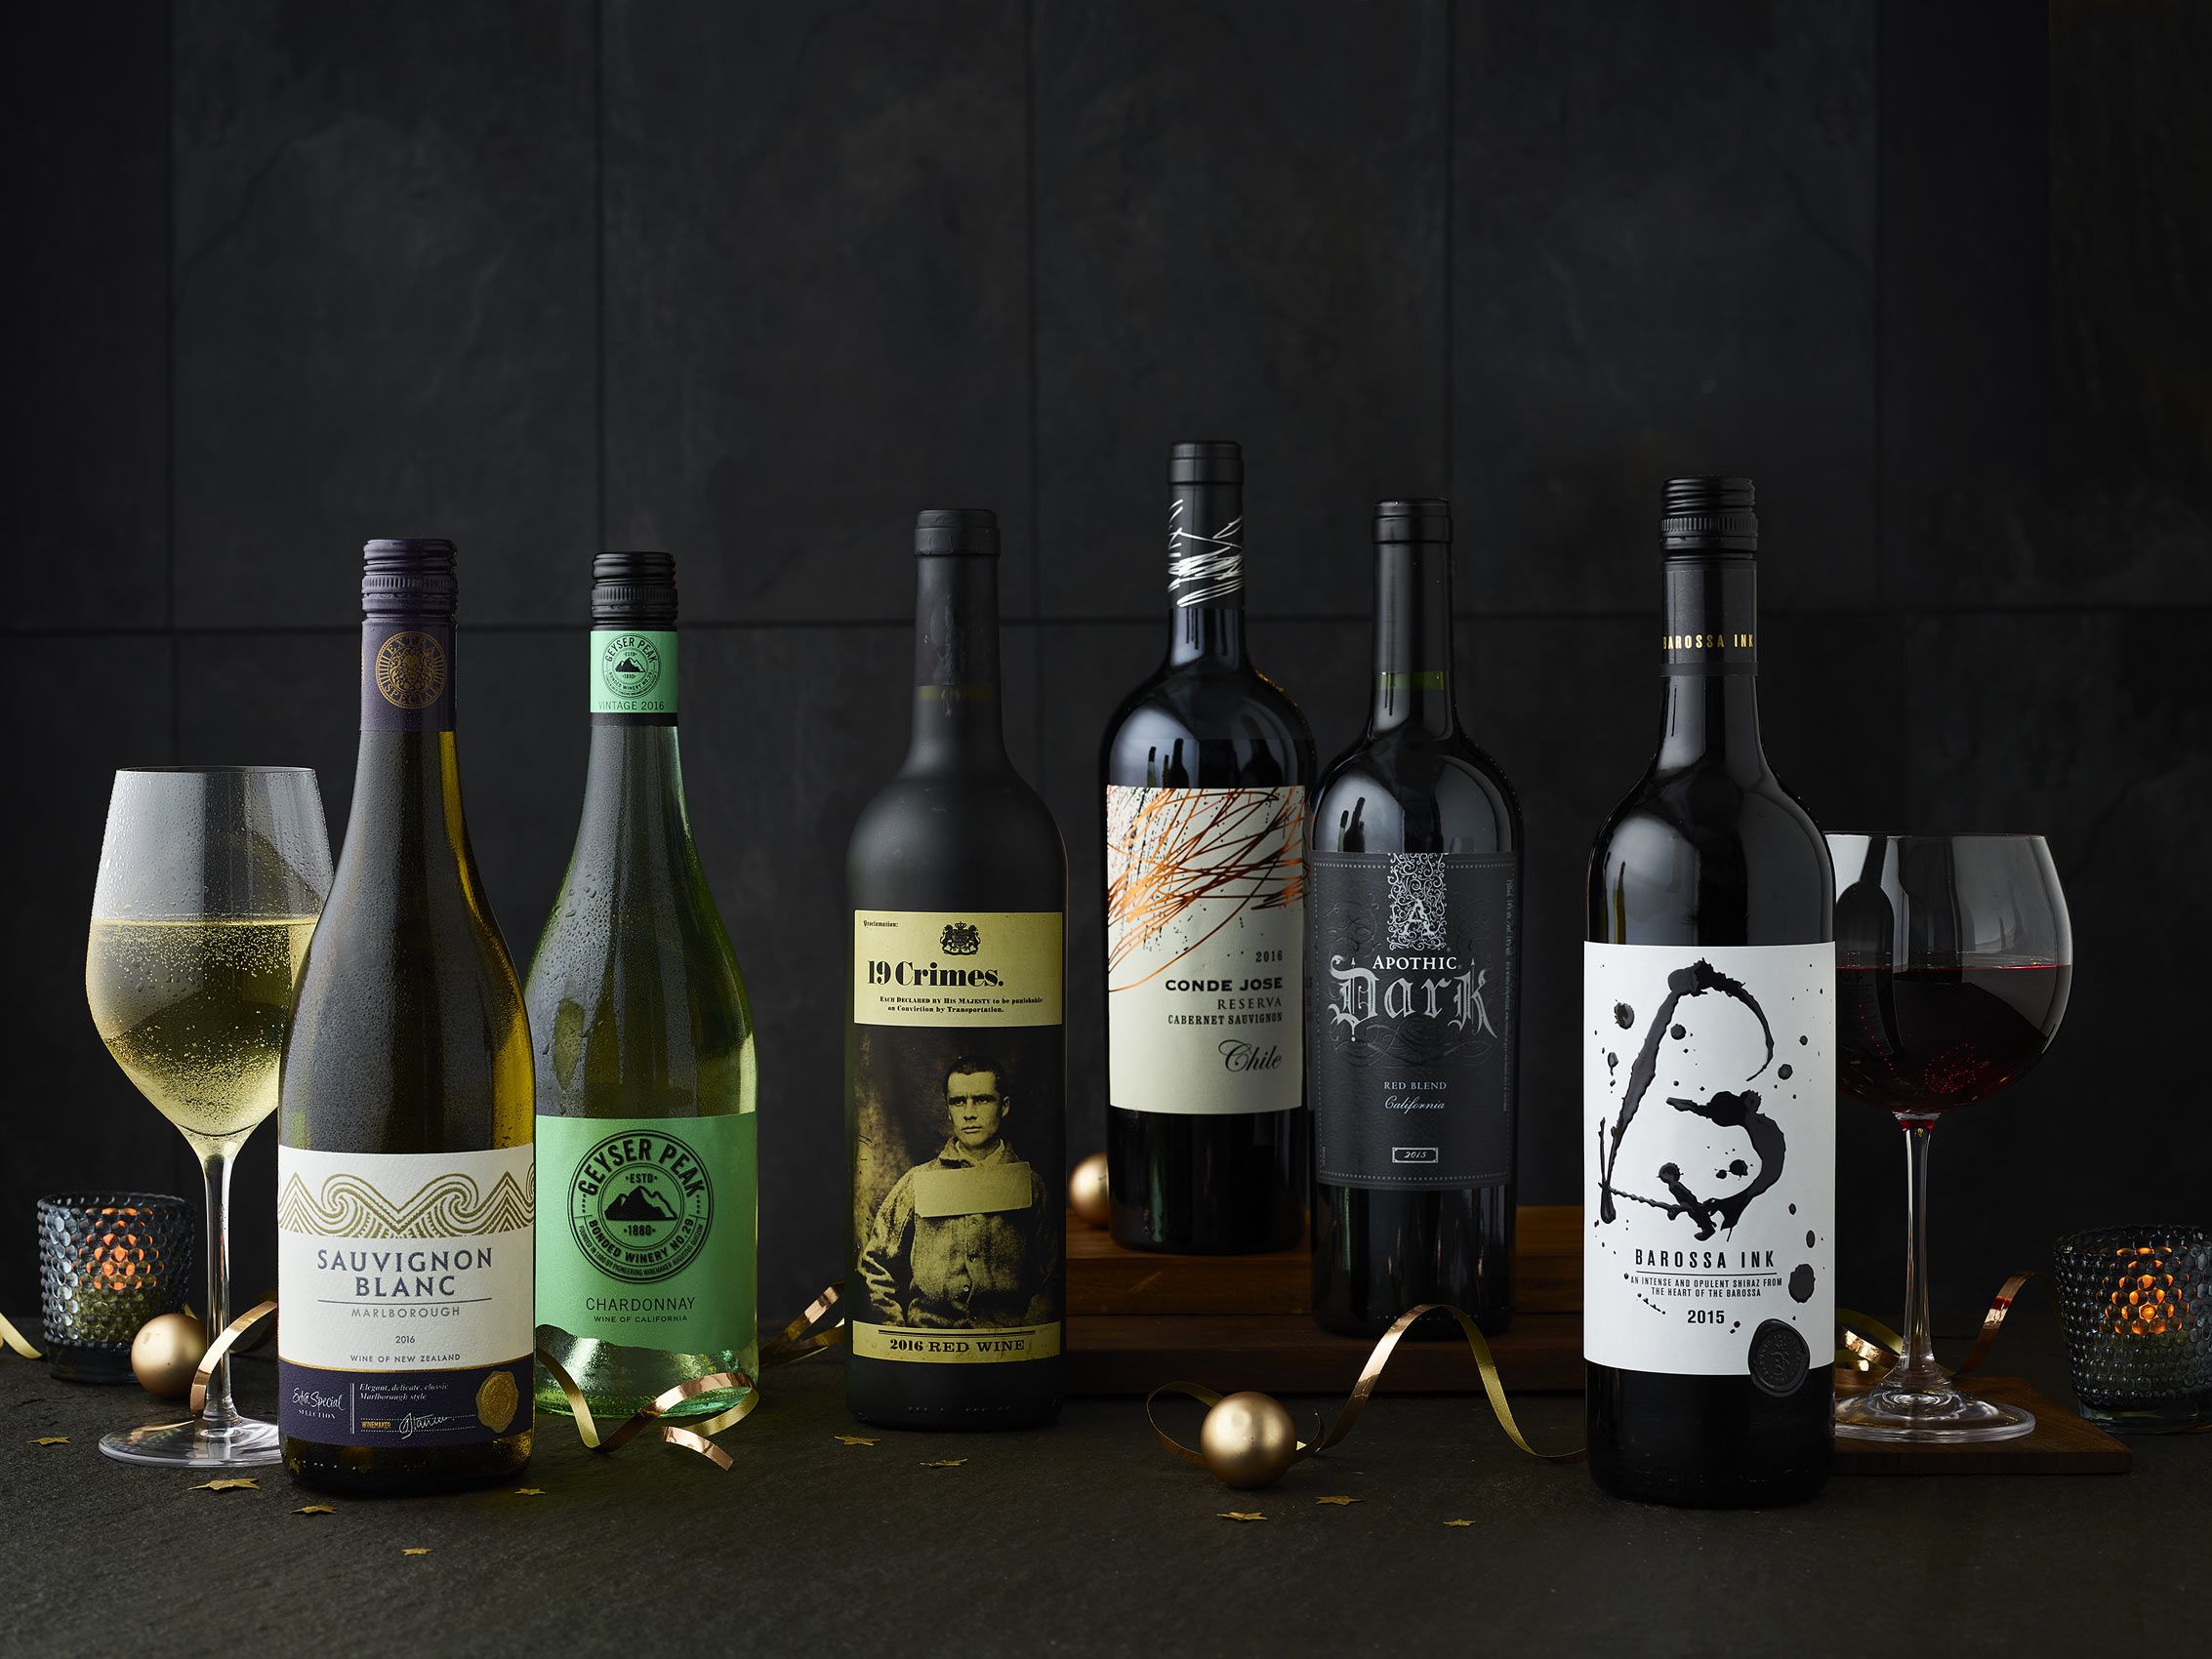 33-food_xmas_press_premium_wine_0454